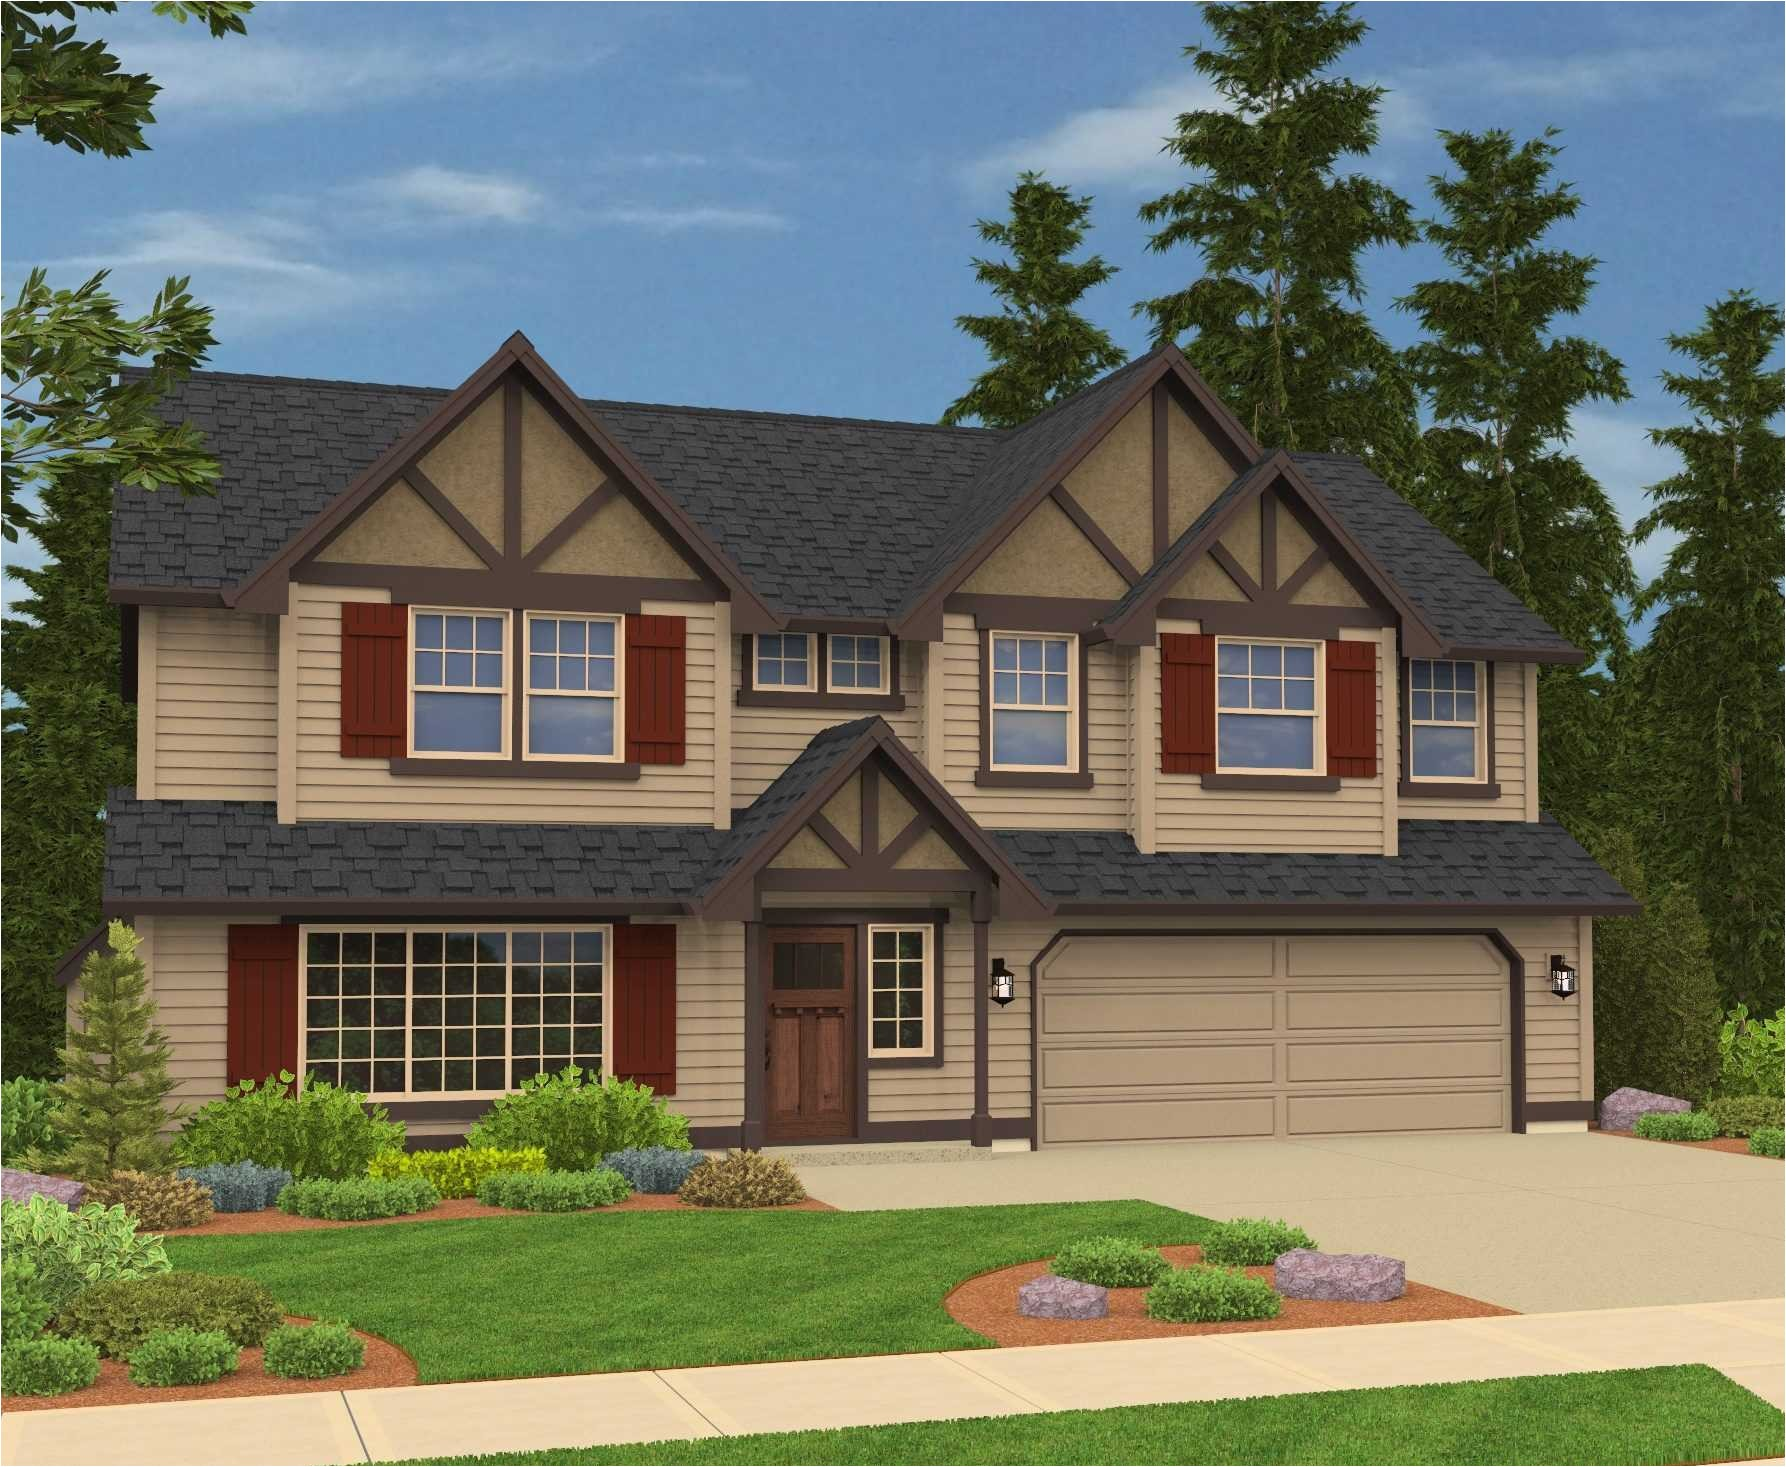 free green house plans or modern house plans amp custom home design plans with s 2